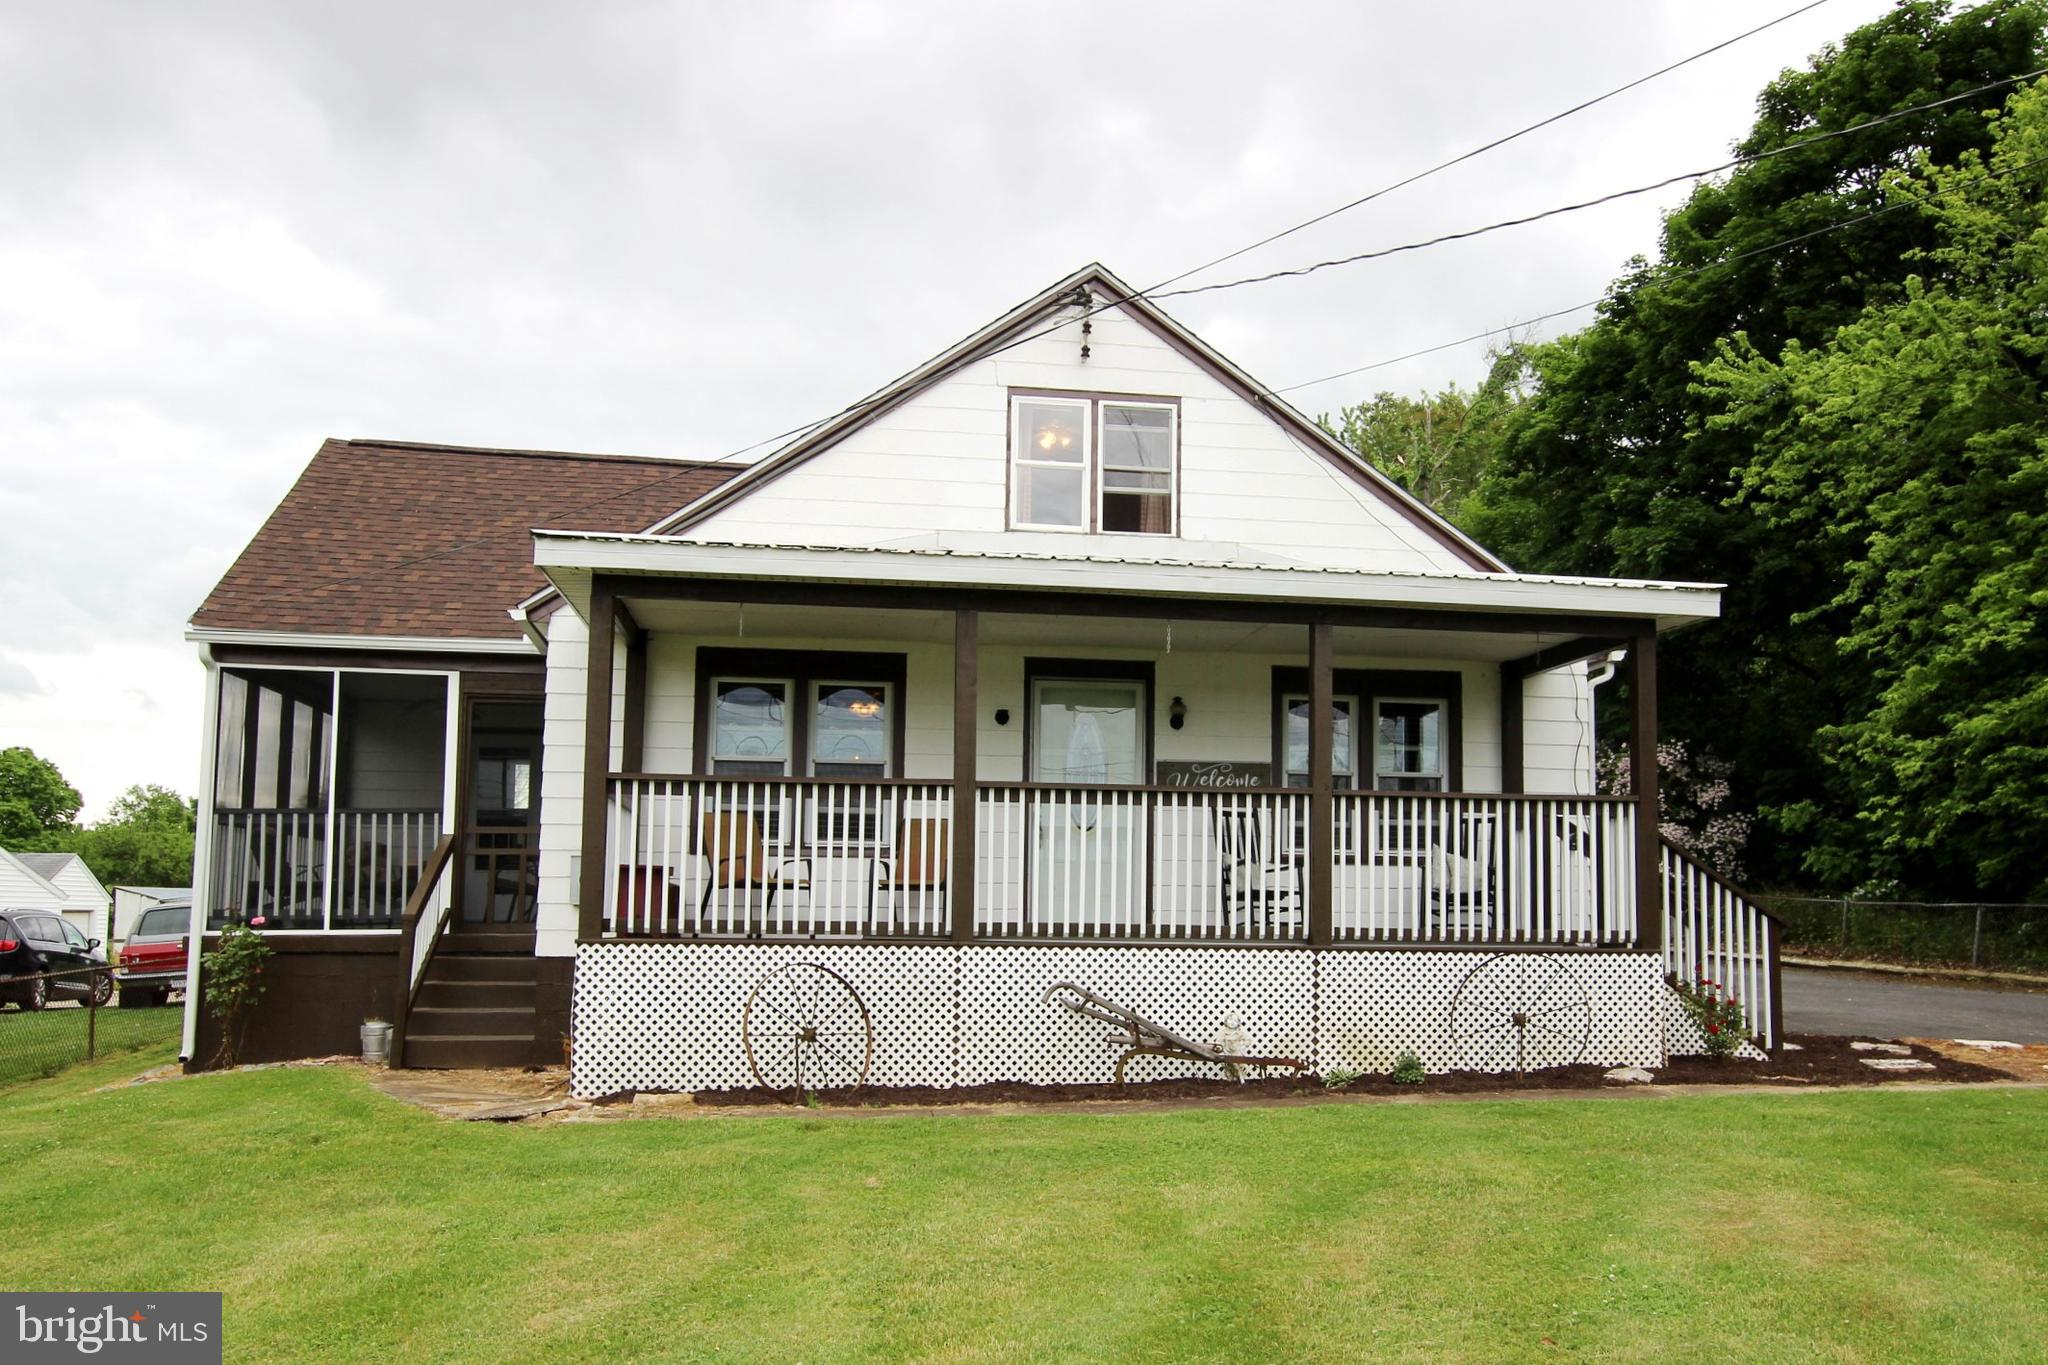 This charming 3 bedroom Craftsman style home is ready for a new owner! Relax on the newly constructe